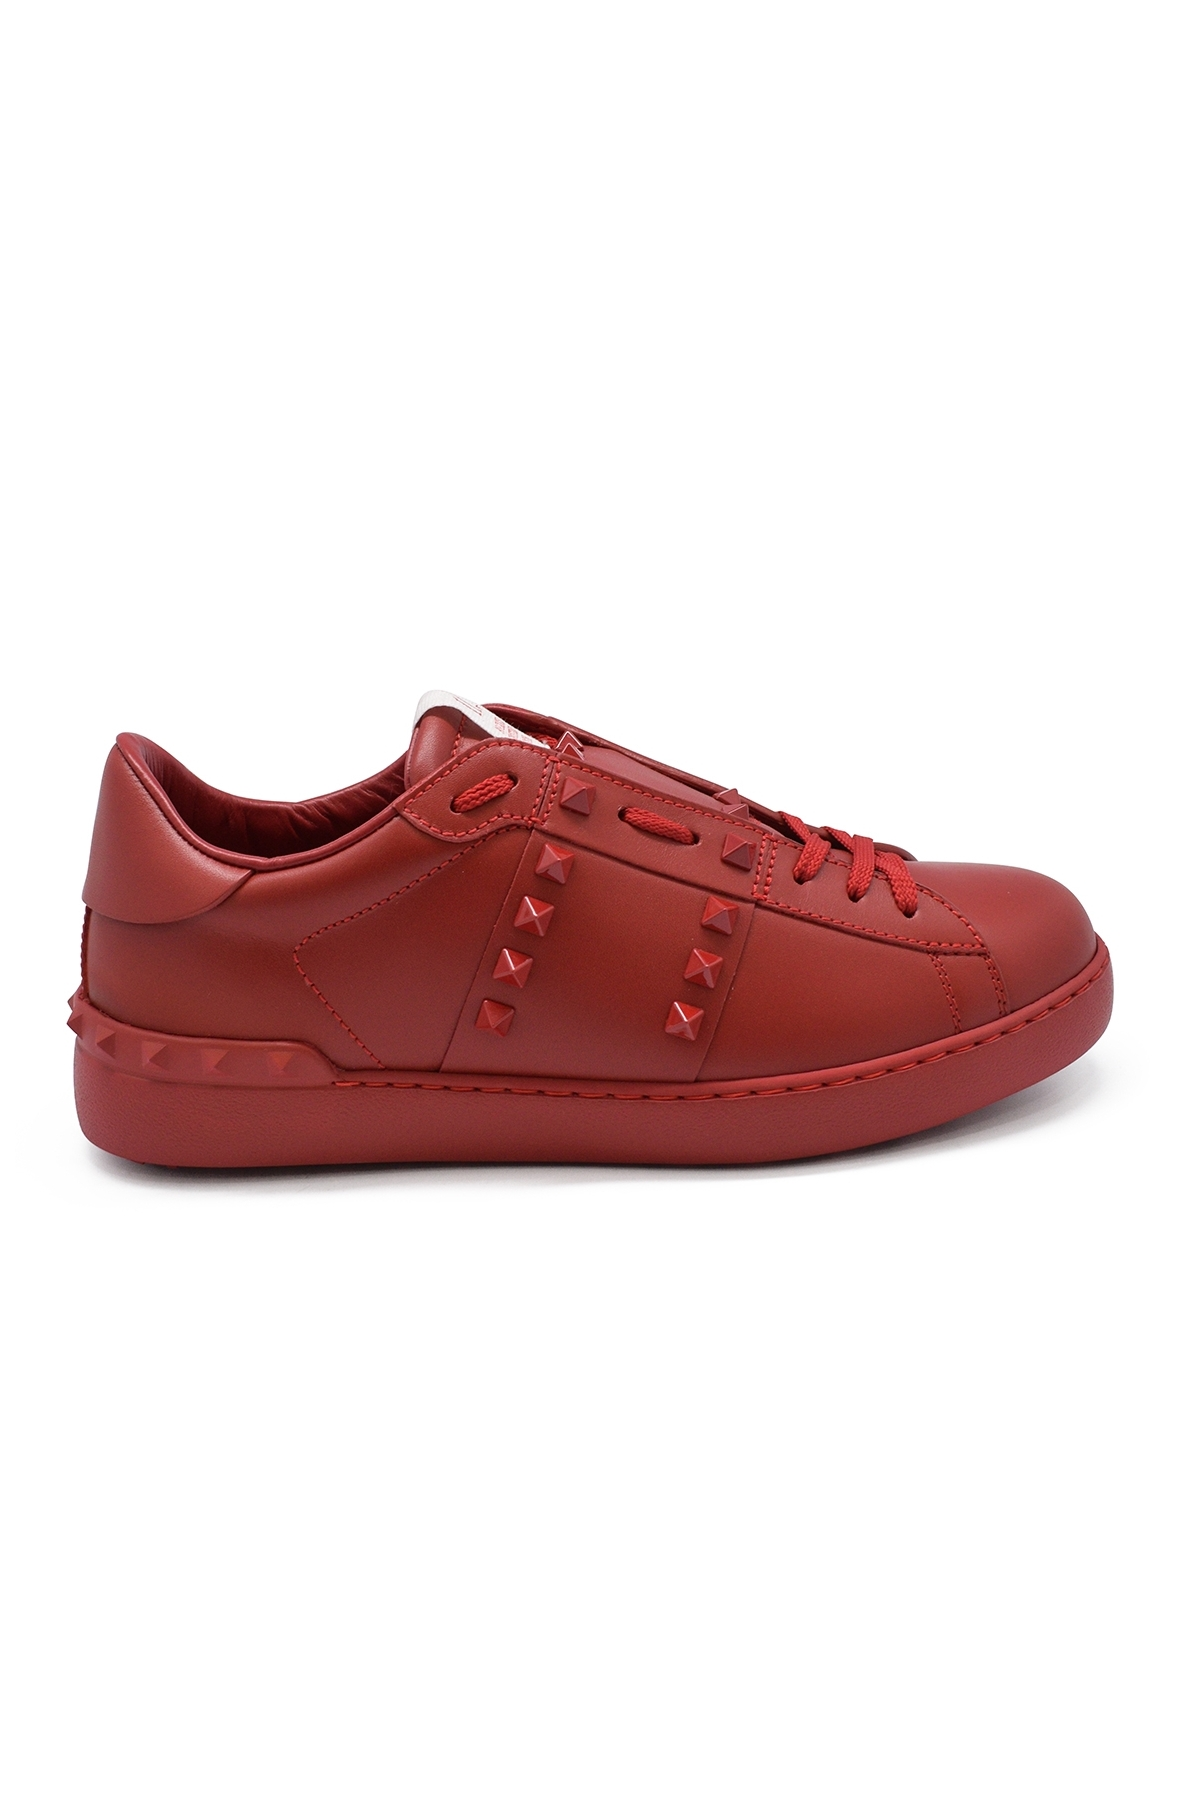 Rockstud 11 Untitled sneakers